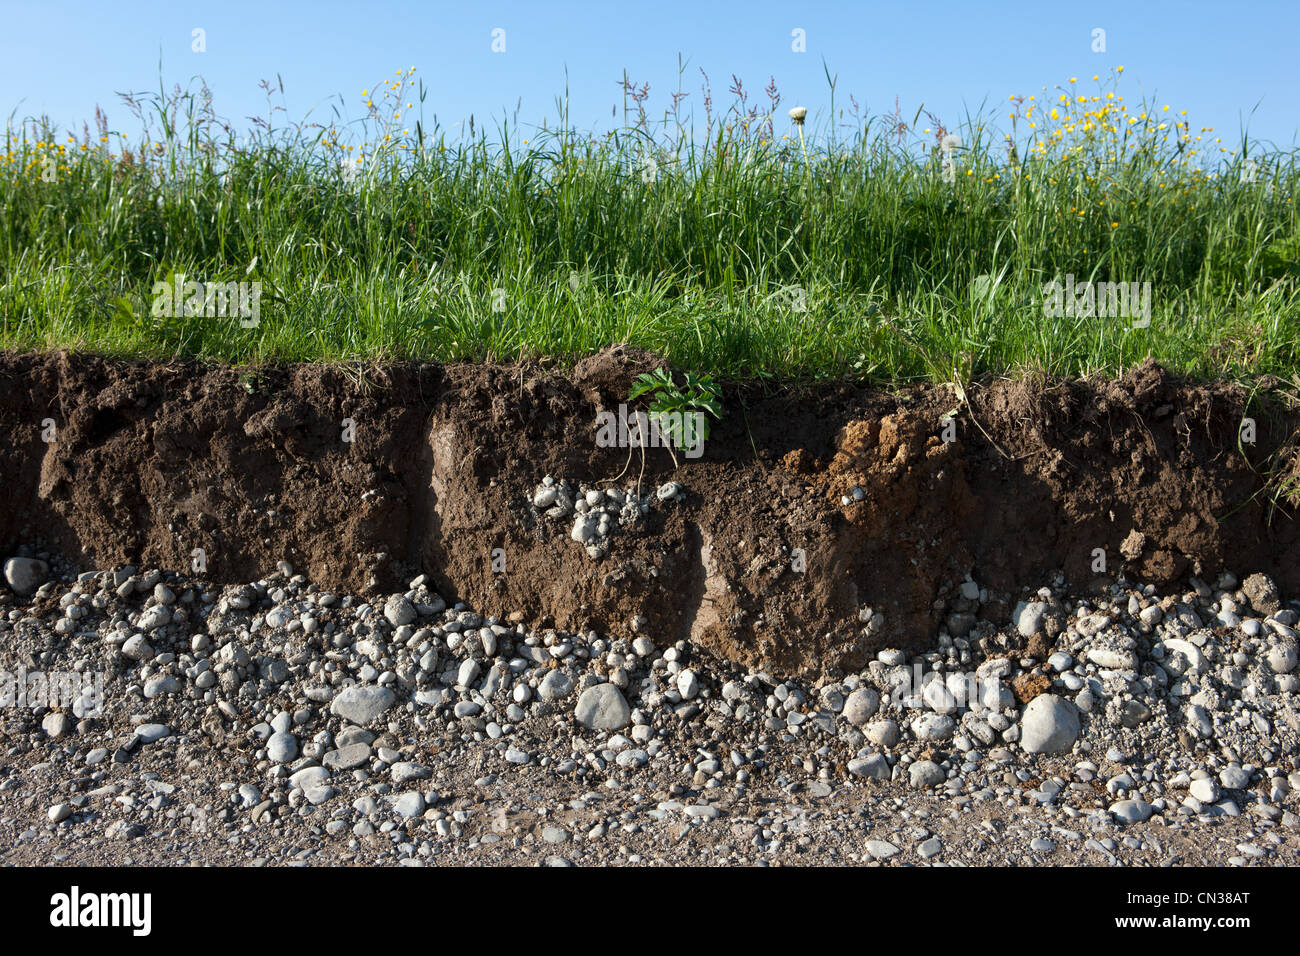 Soil and grass cross section - Stock Image